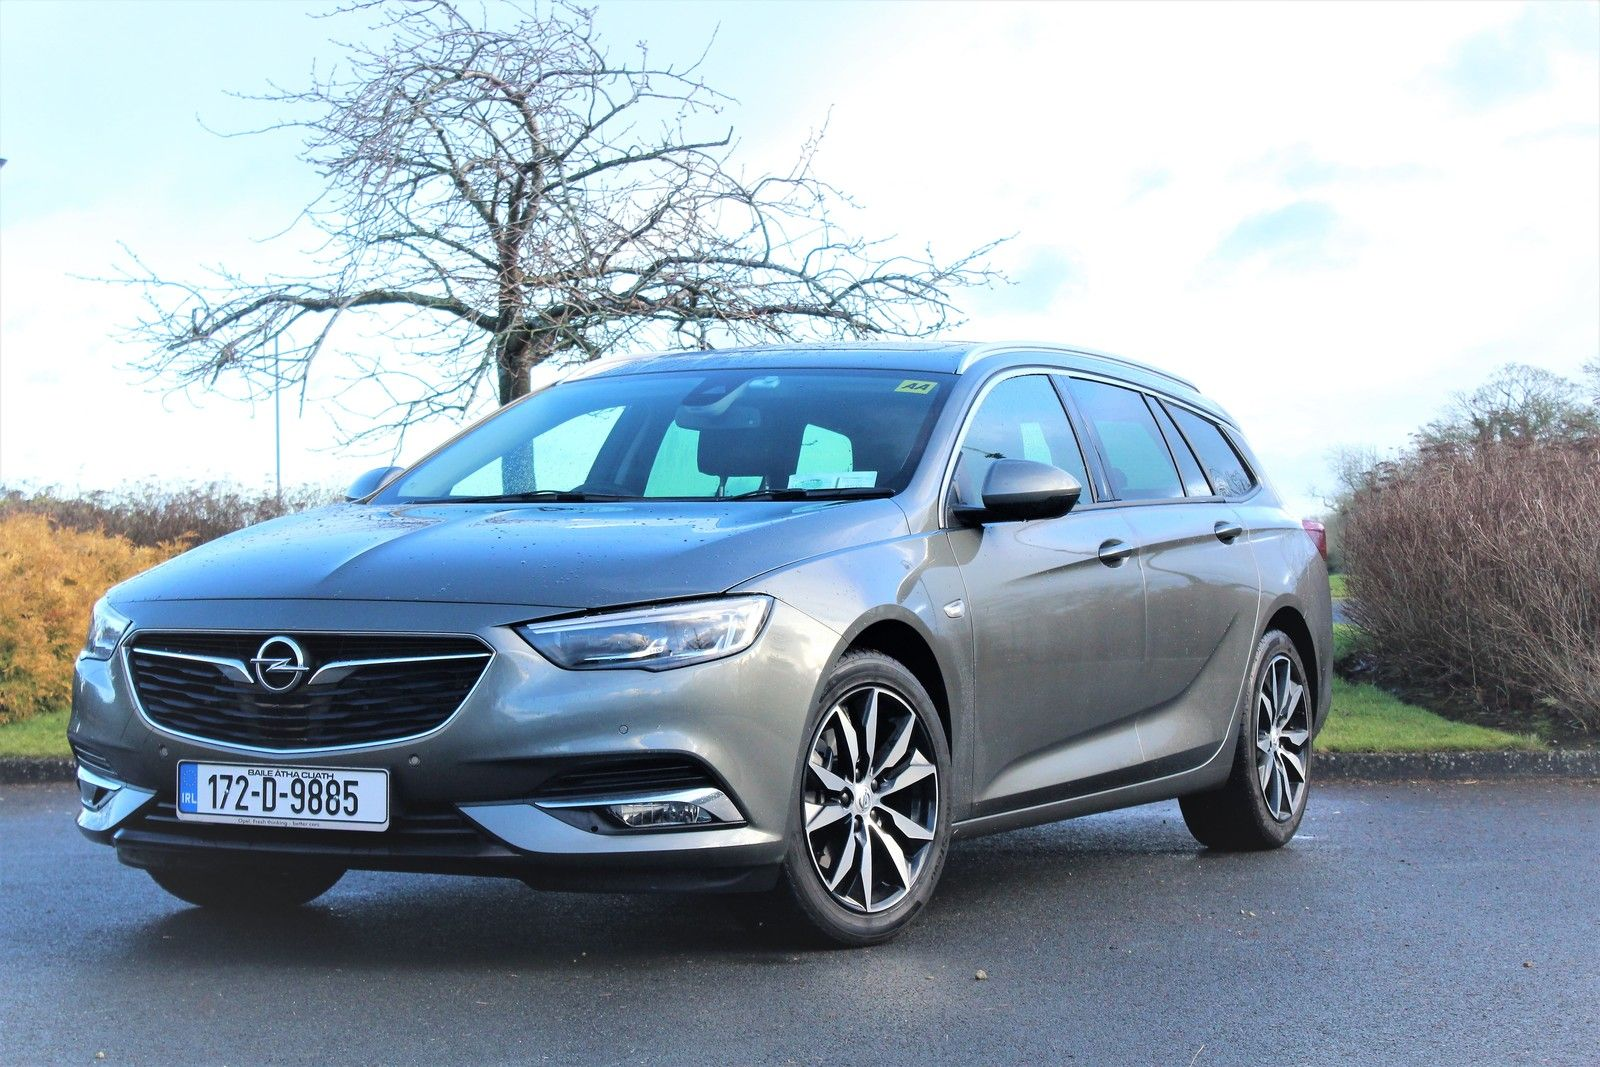 New Opel Insignia Sports Tourer 2018 What The Had To Offer And Since Then I Have Opportunity Drive Both Grand Sport Versions On Irish Roads